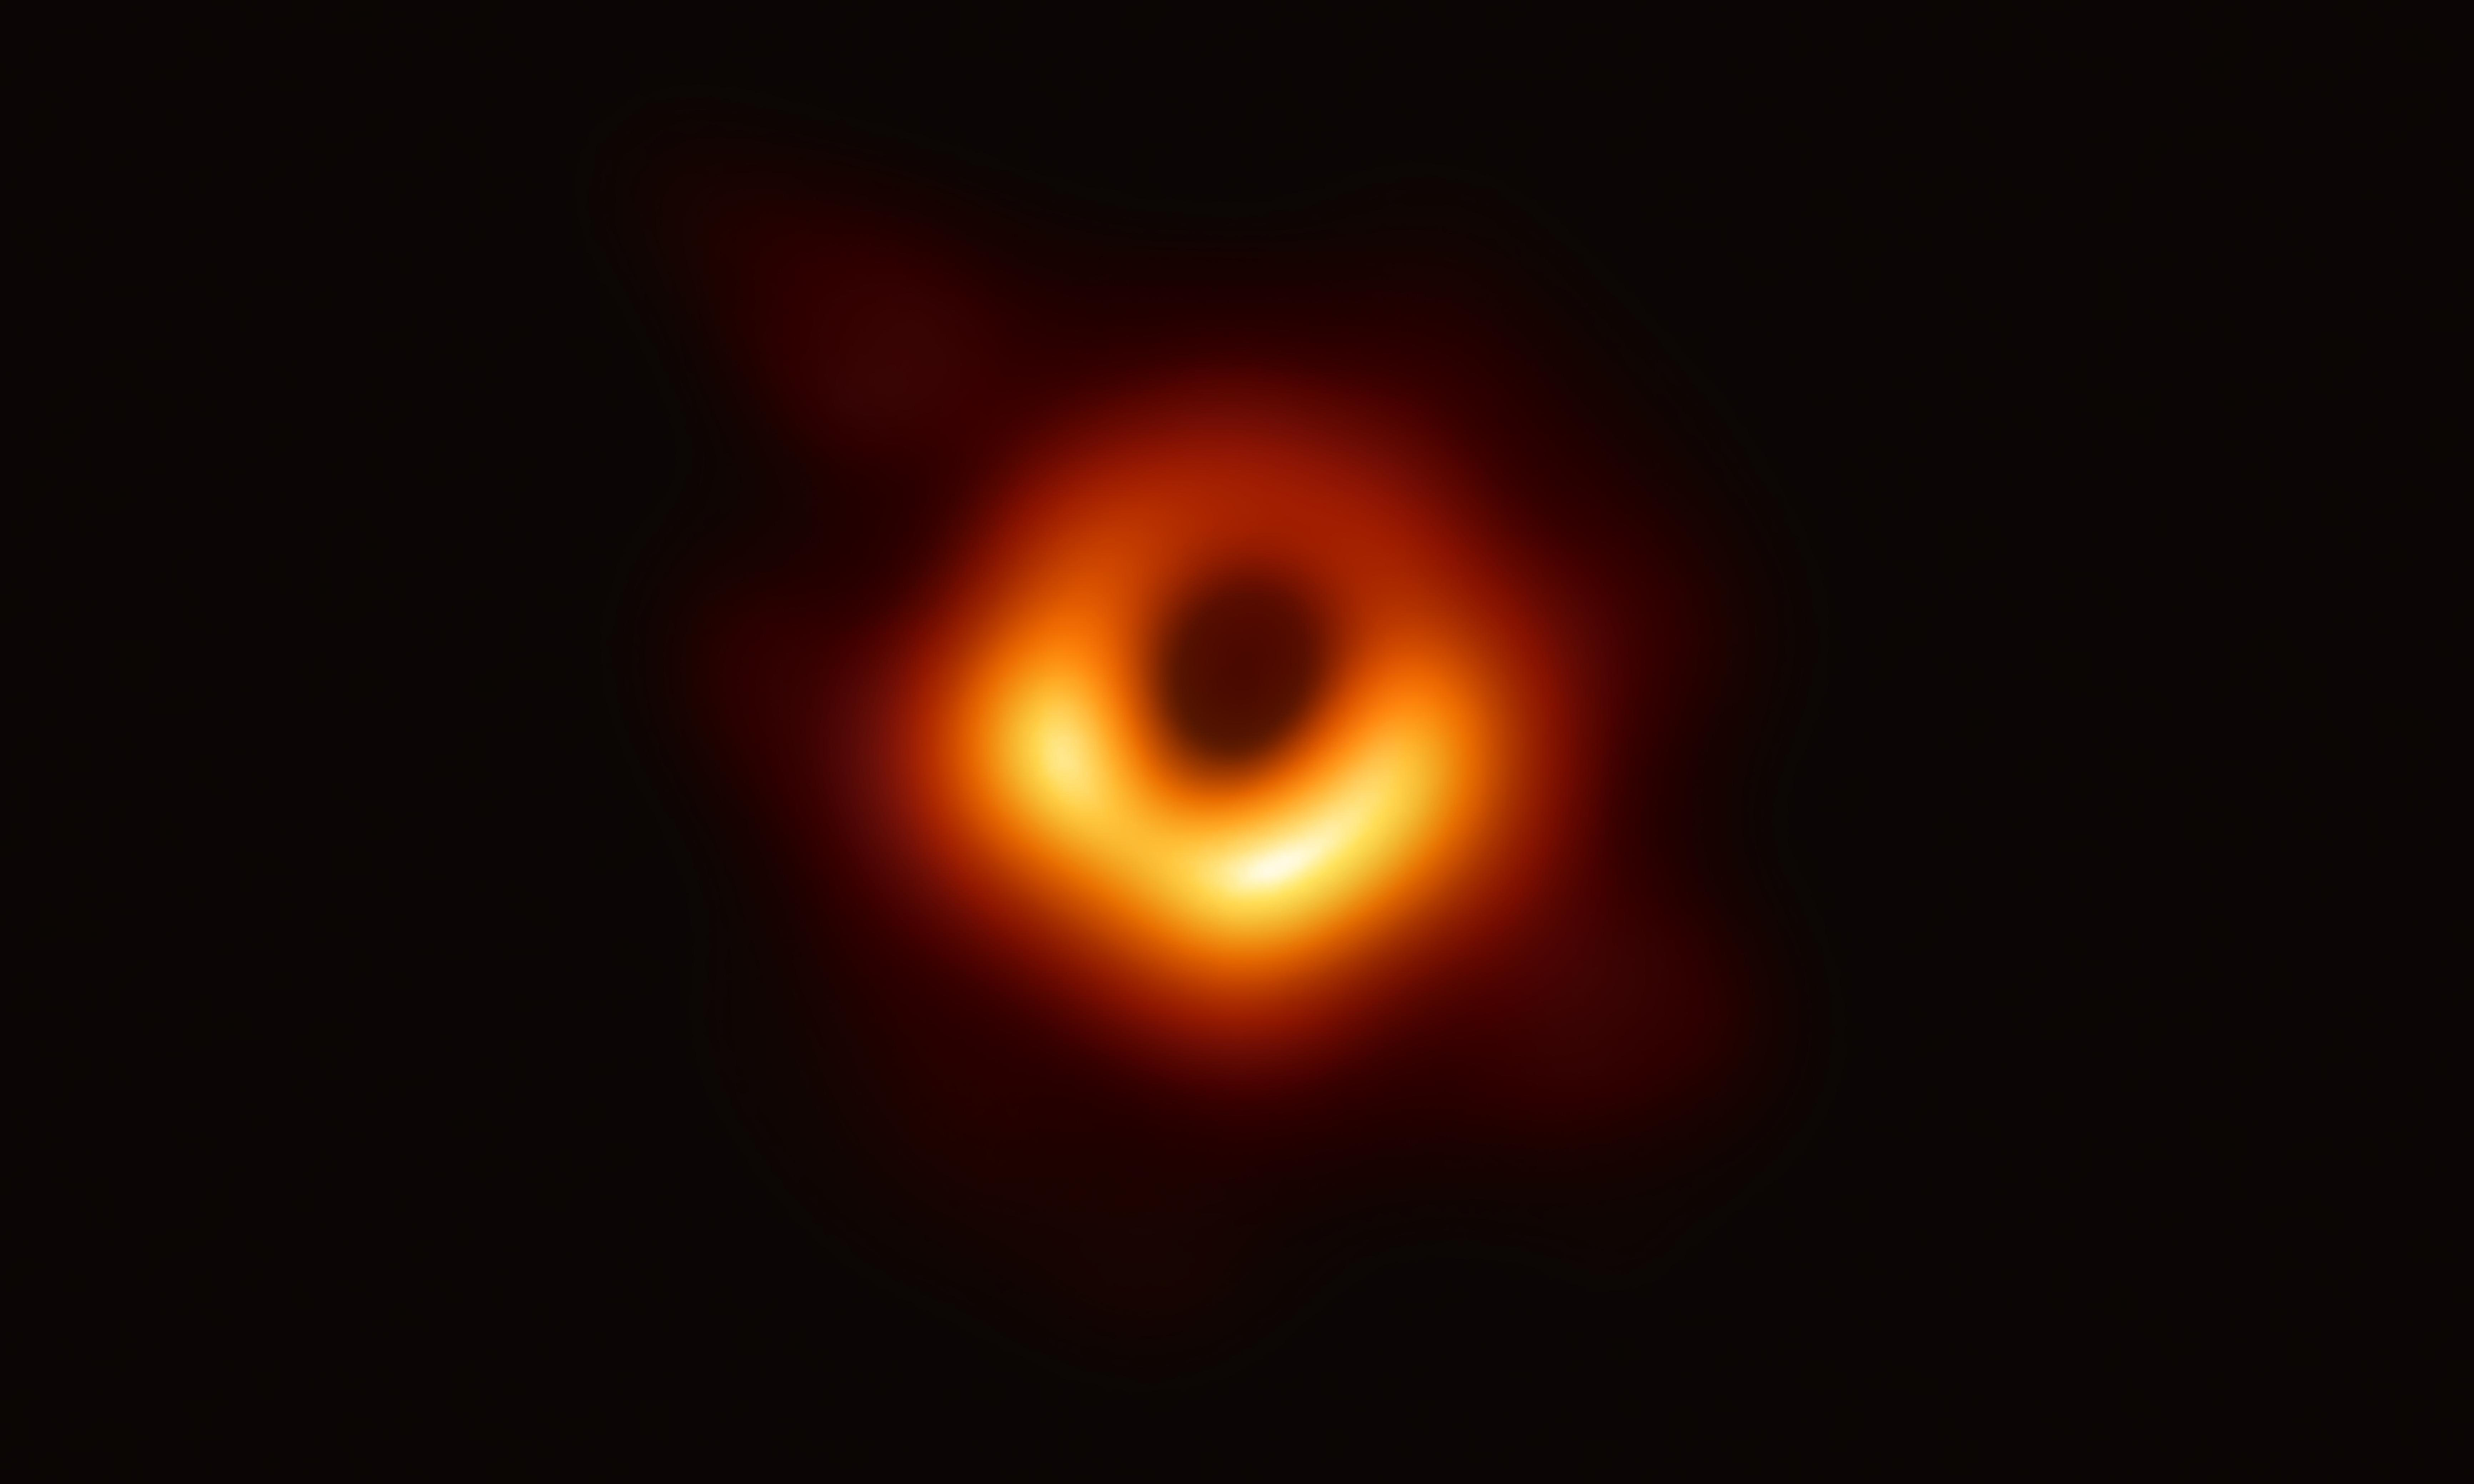 The first black hole image: what can we really see?